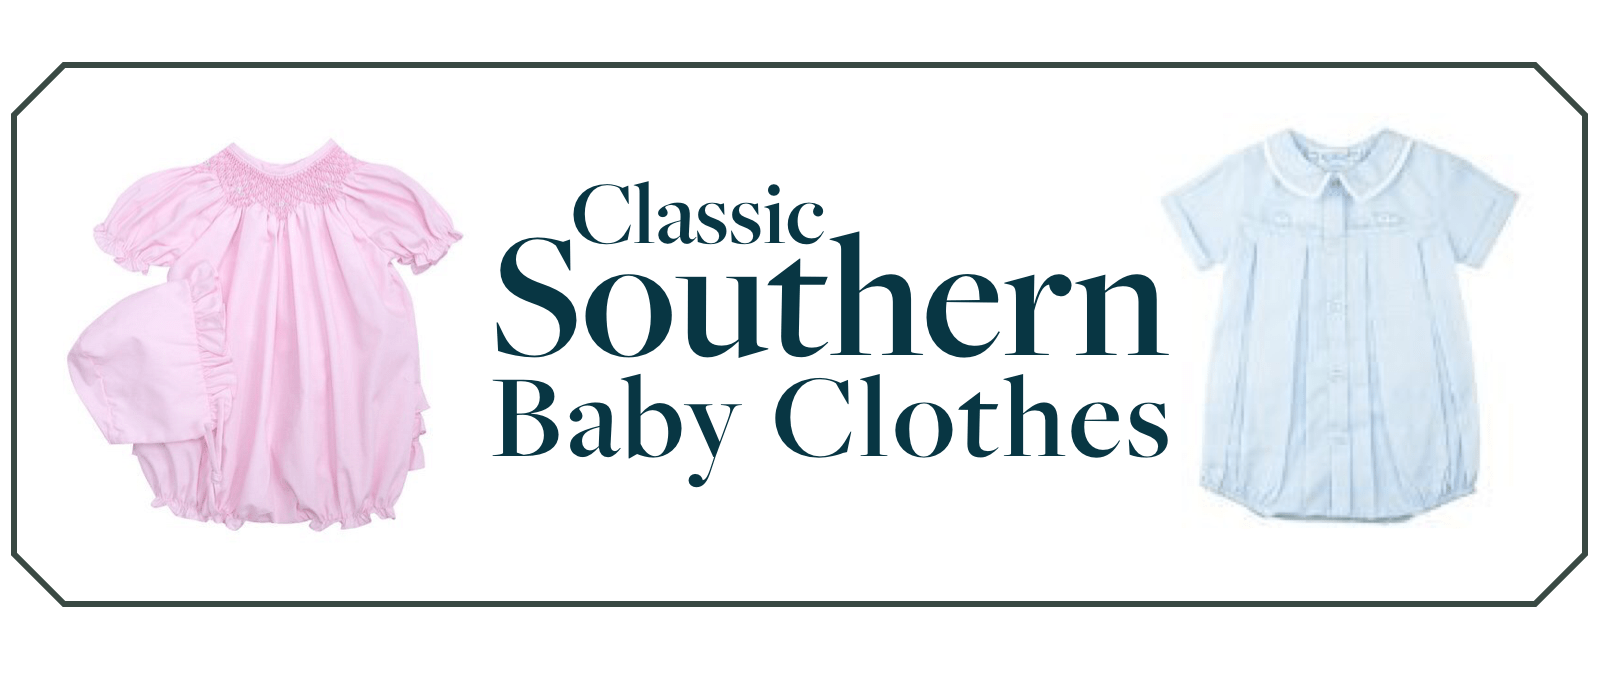 Classic southern baby clothes